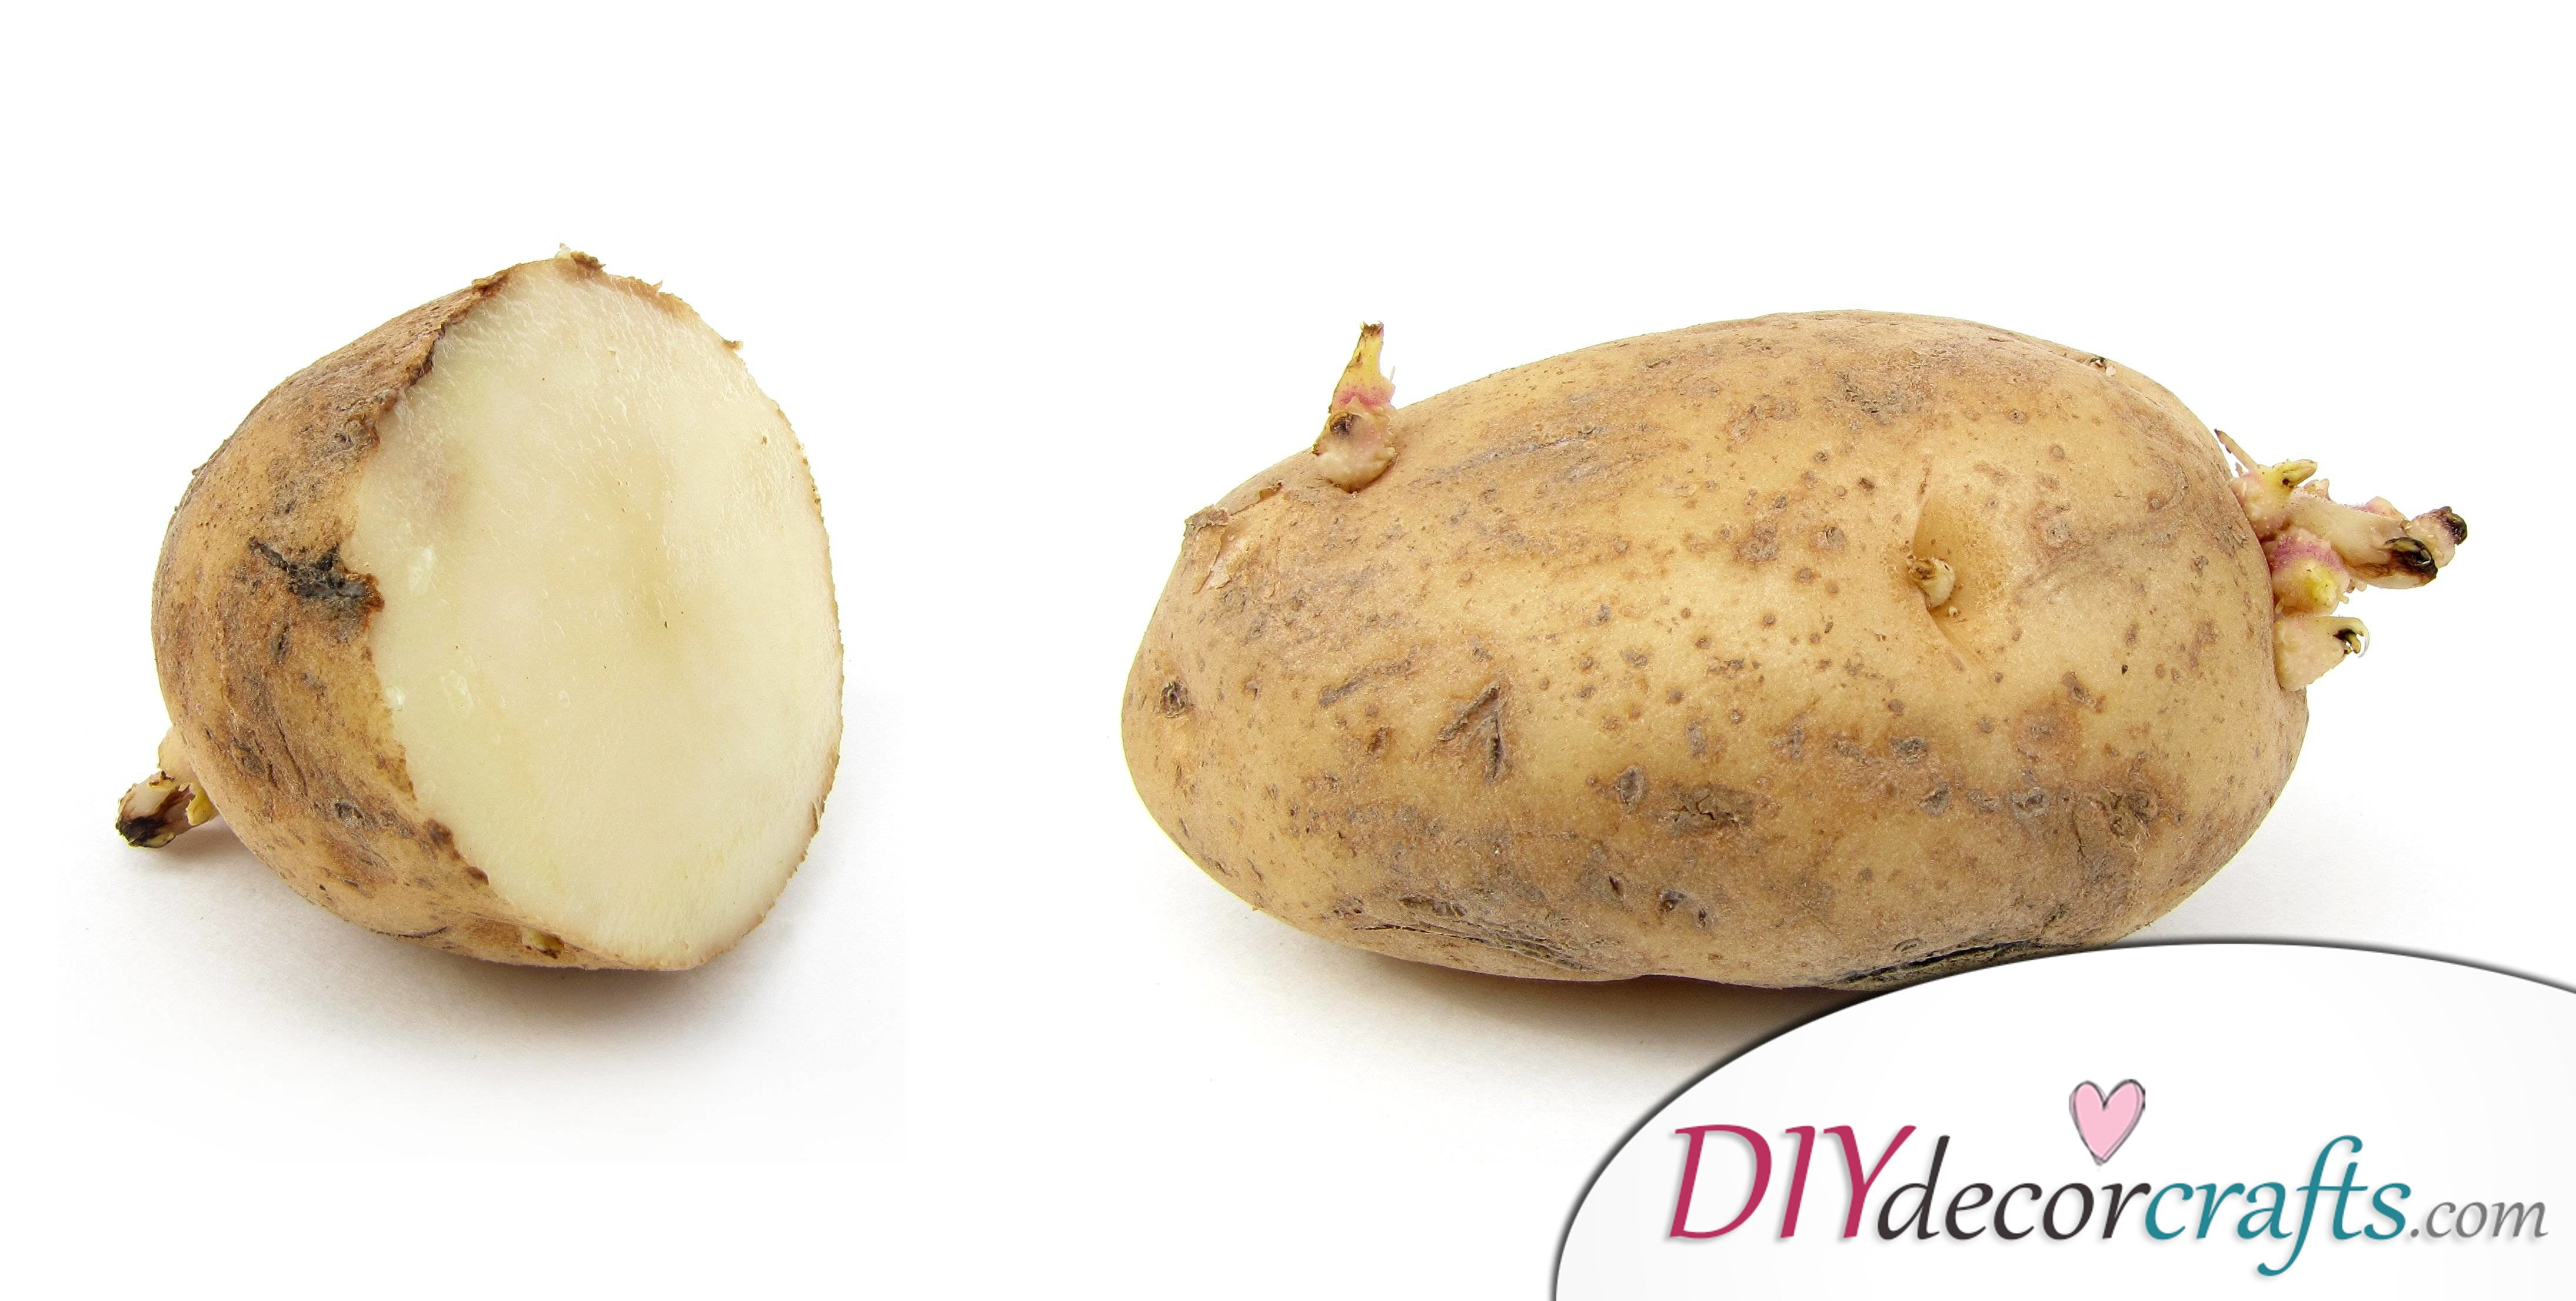 How To Get Rid Of Eye Bags Easily, Potatoes